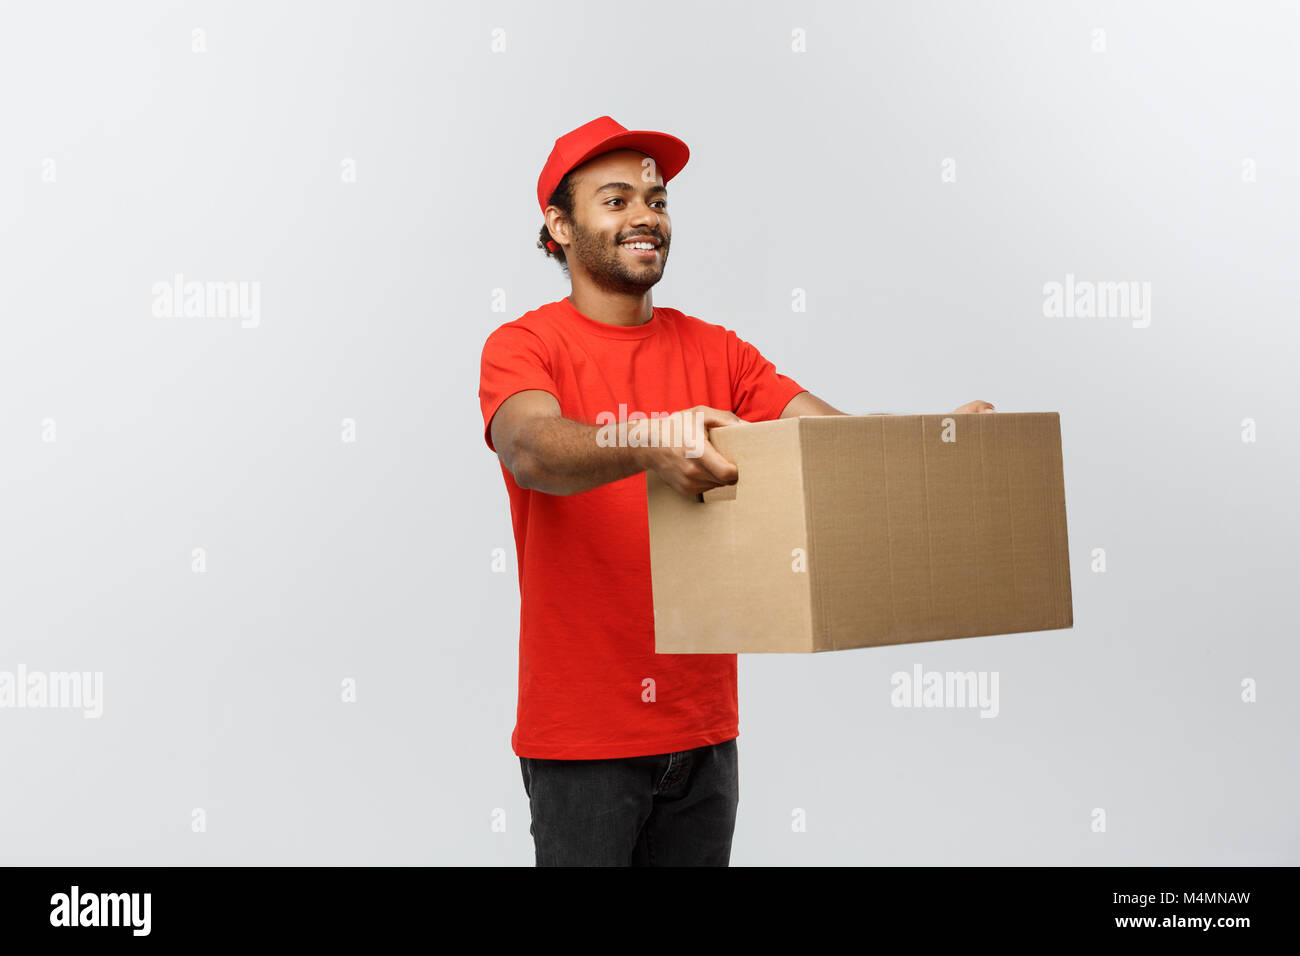 Delivery Concept - Portrait of Happy African American delivery man in red cloth holding a box package. Isolated Stock Photo